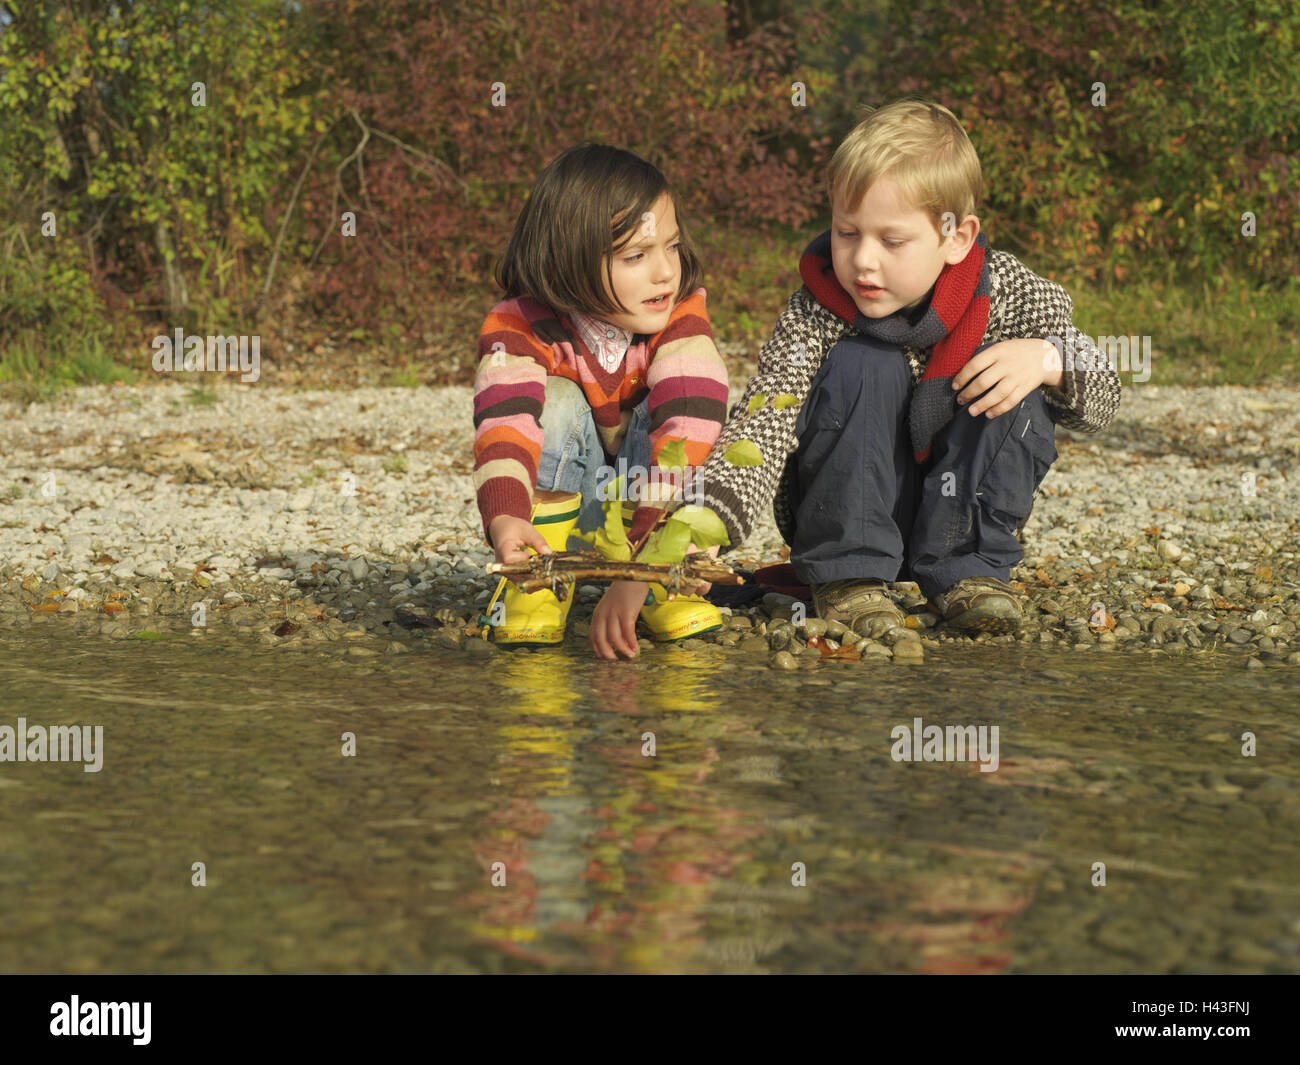 Lakesides, children, girls, boy, crouch, play, raft, selfbuilt, try out, autumn, waters, lake, shore, water, leisure - Stock Image